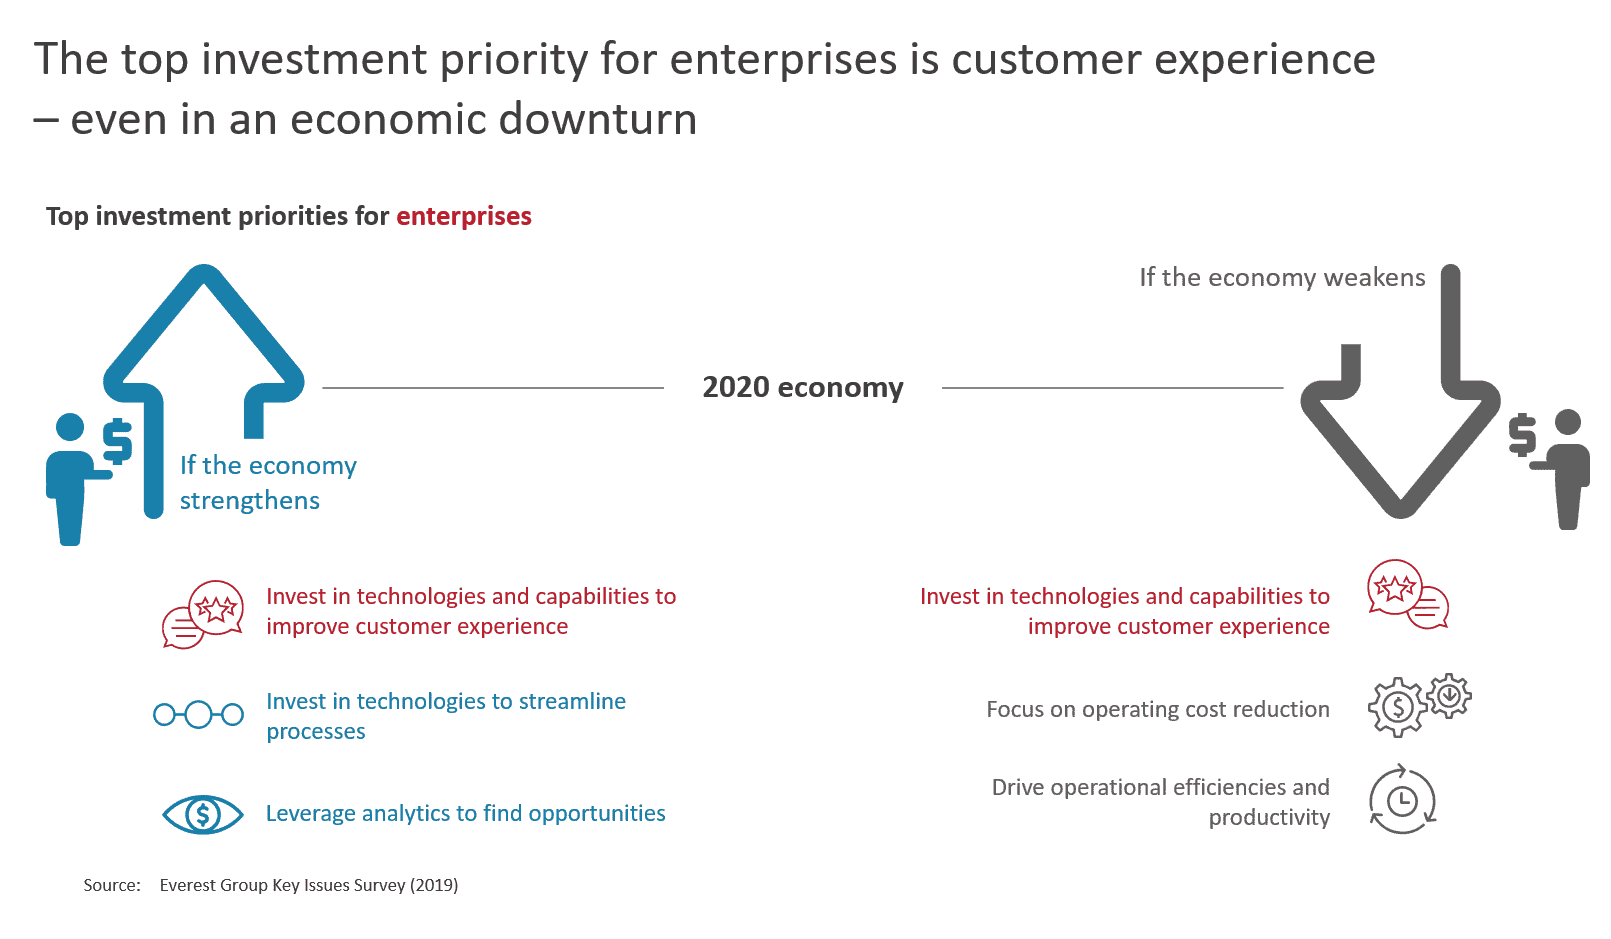 The top investment priority for enterprises is customer experience – even in an economic downturn